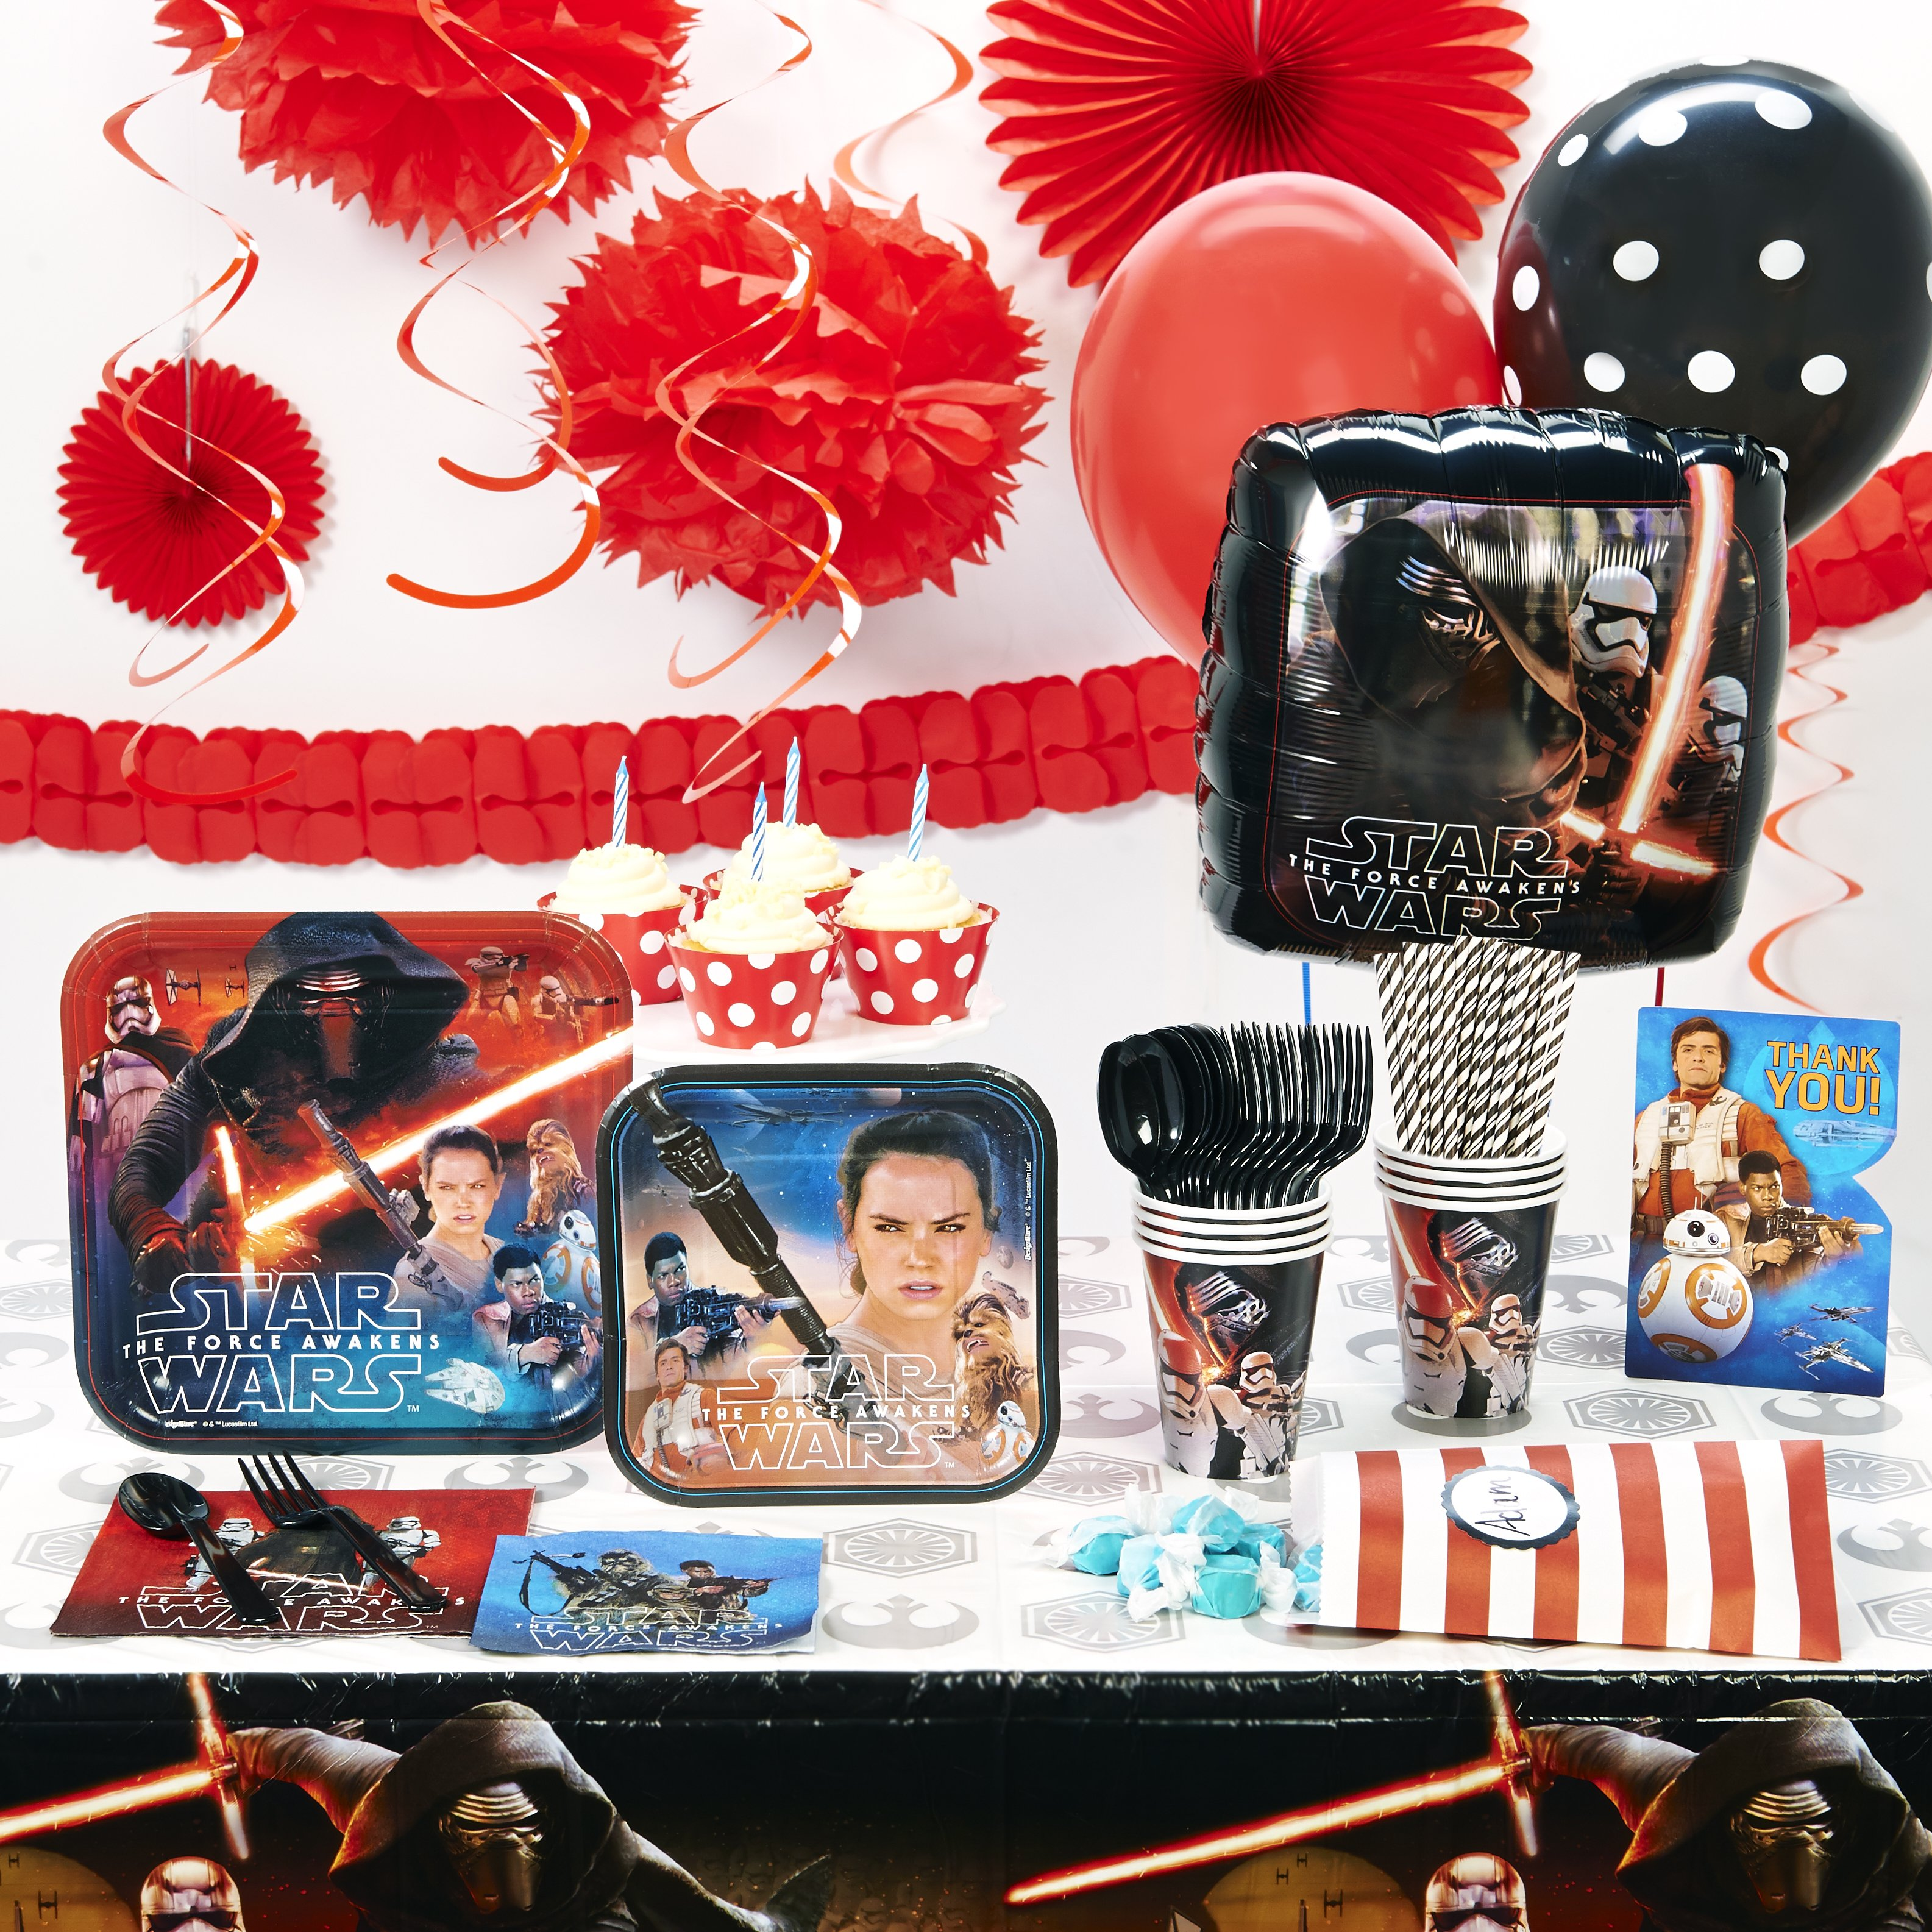 Star Wars Party Supplies And Halloween Costumes